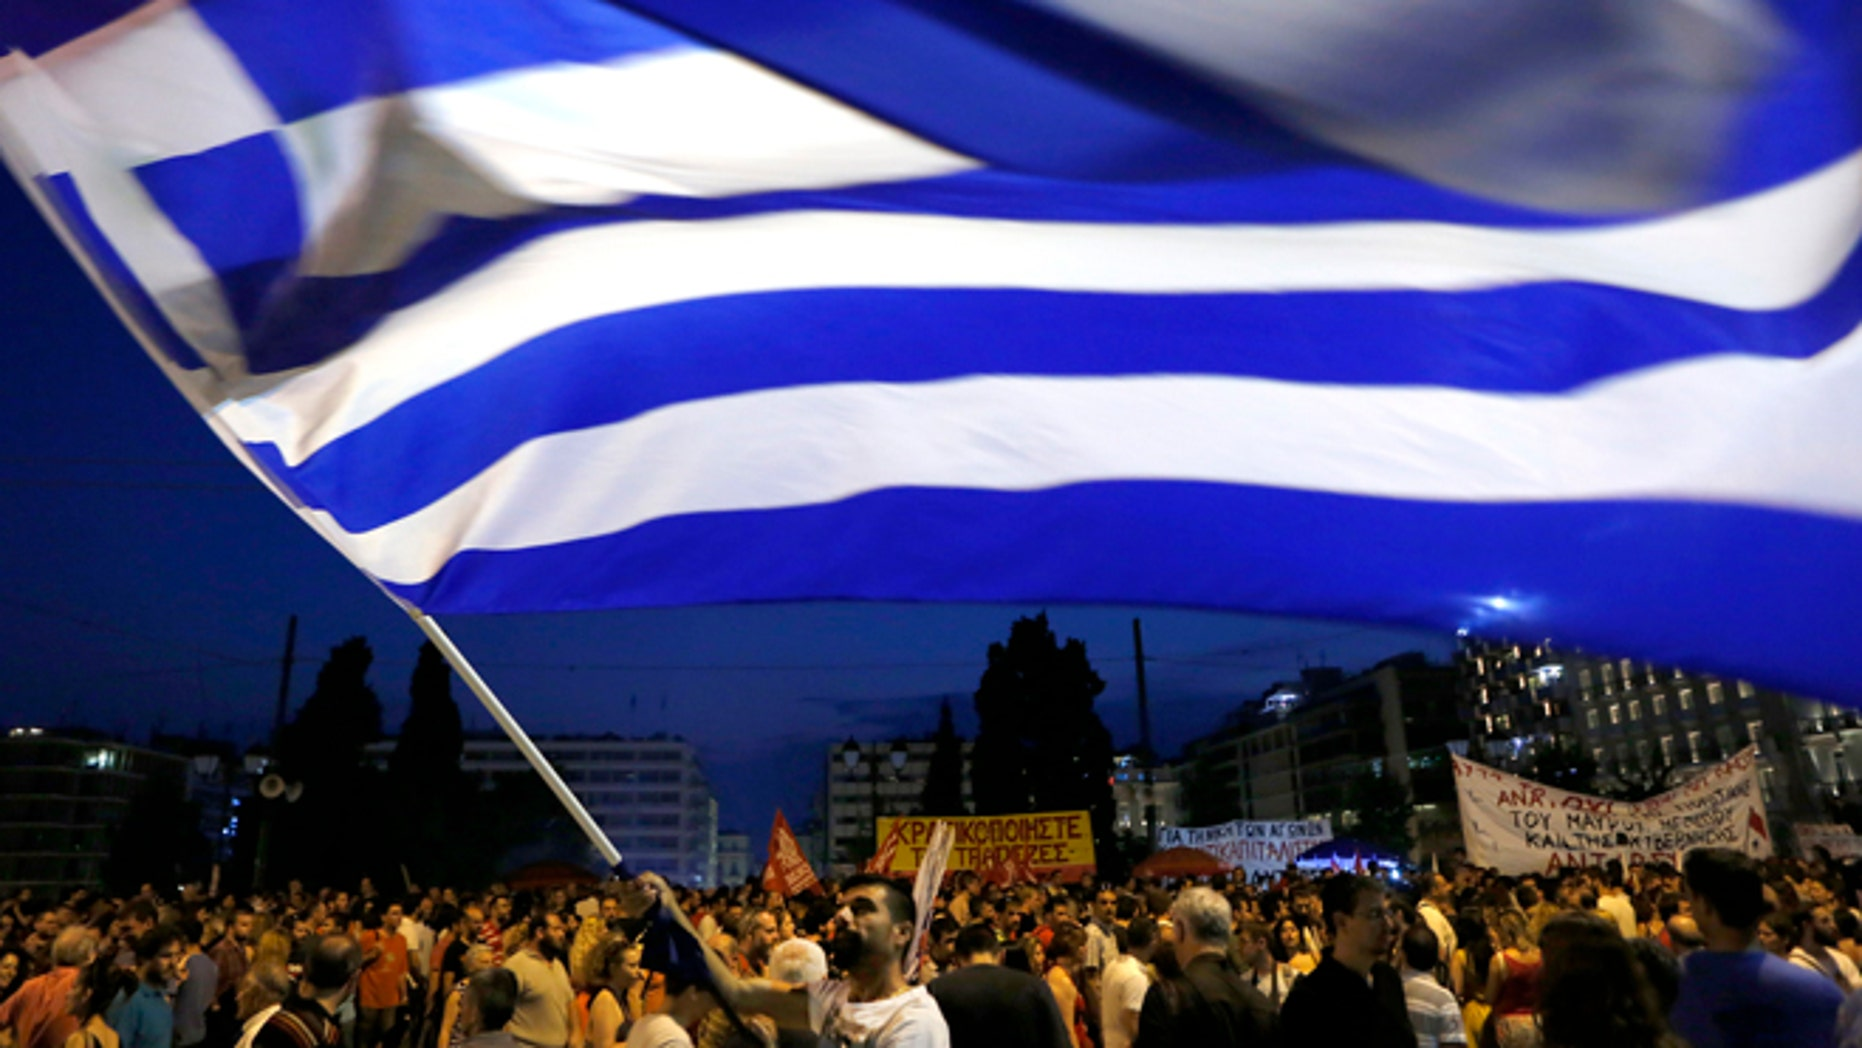 A demonstrator waves a Greek flag during an anti-austerity rally in central Athens, Friday, July 10, 2015. Greek Prime Minister Alexis Tsipras sought his left-wing party's backing on Friday for a new budget austerity package that is harsher than what he urged Greeks to reject in a vote just last week, but would provide the country will longer-term financial support. (AP Photo/Petros Karadjias)